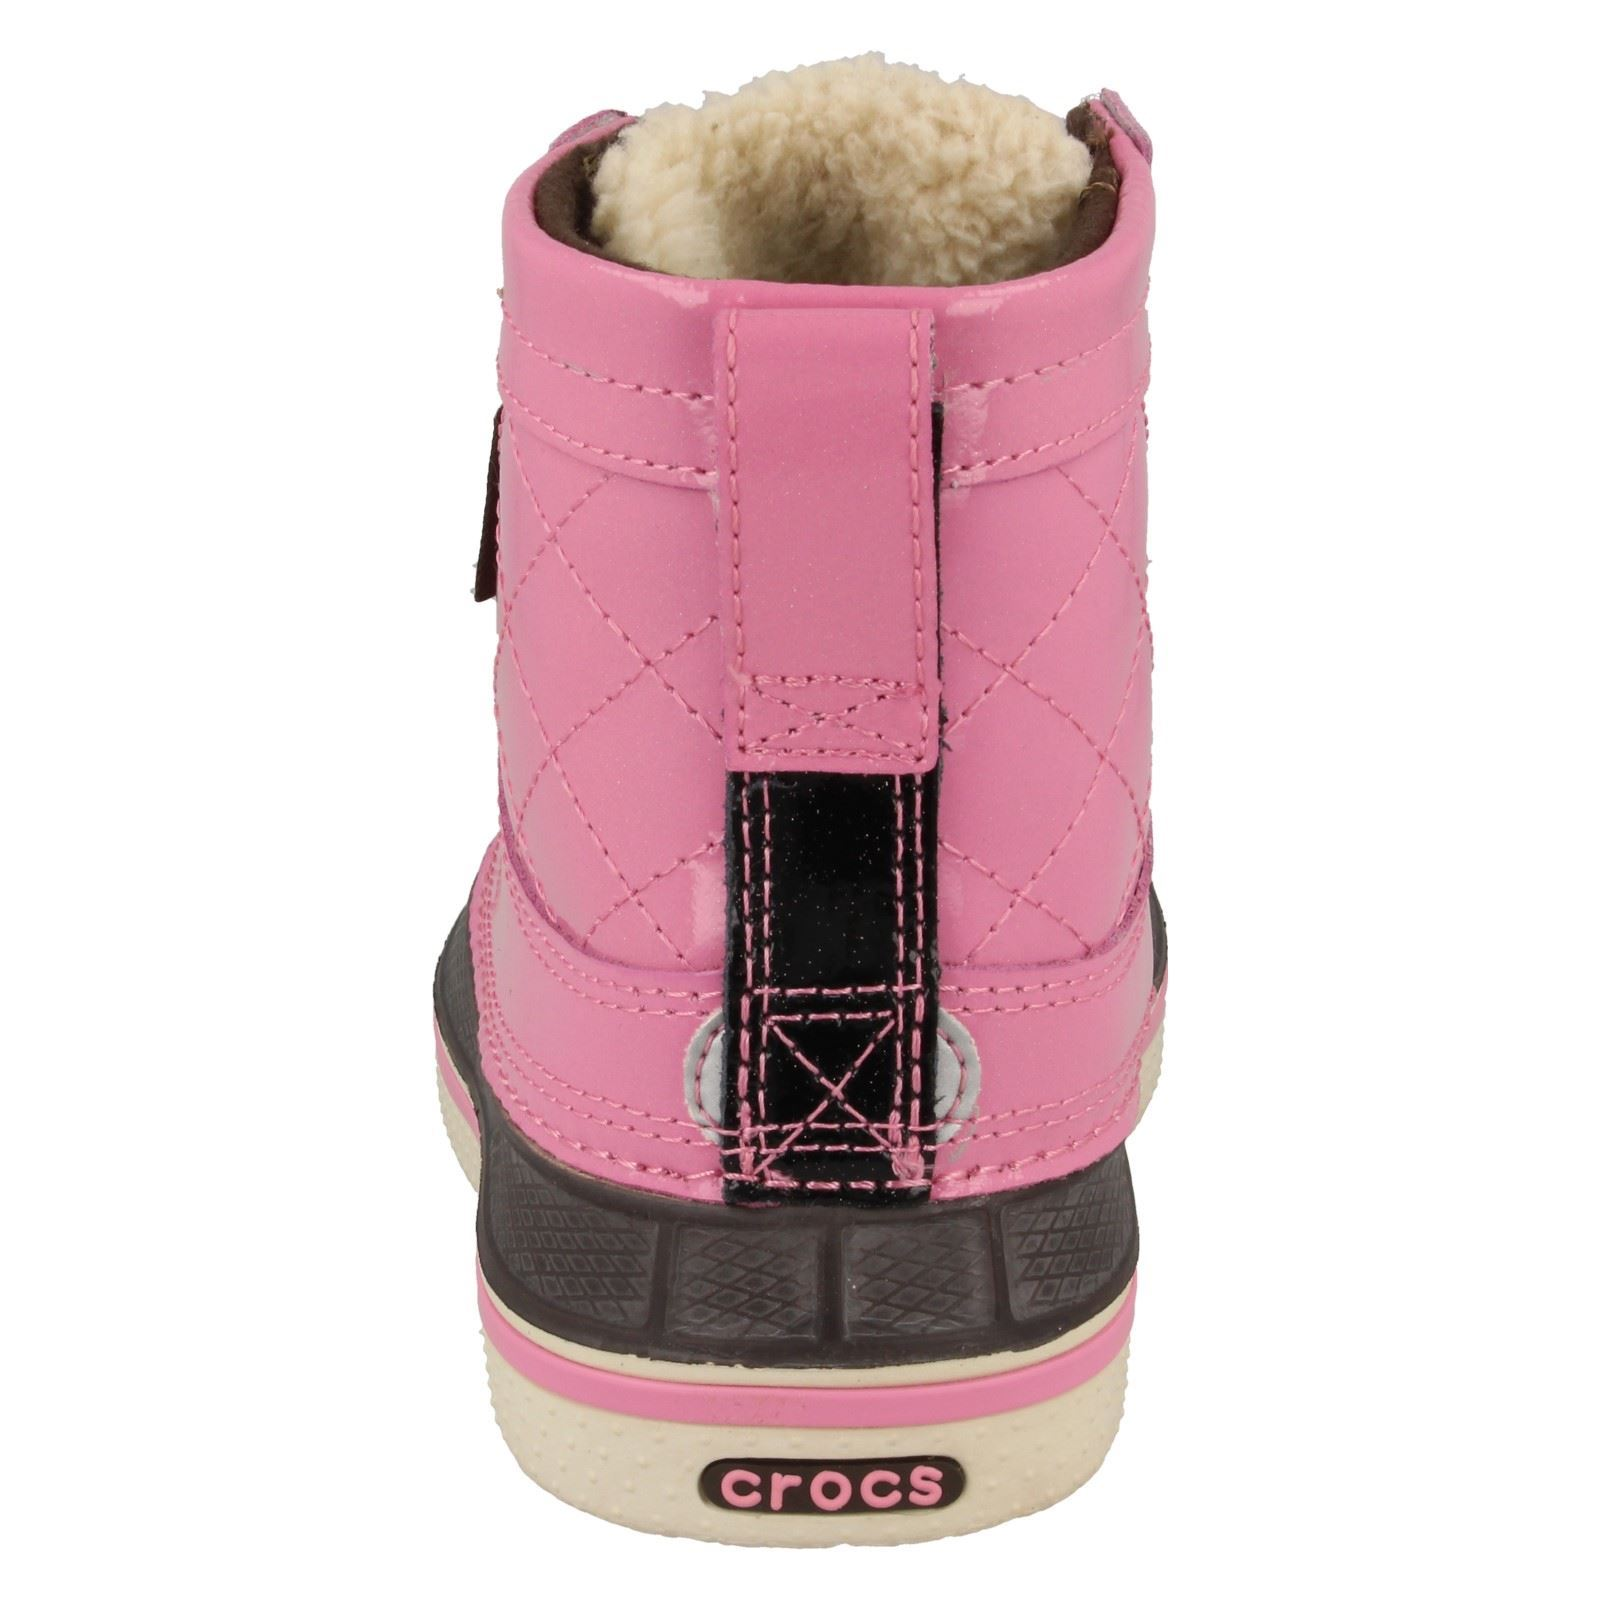 Childrens Crocs Faux Fur Lined Boots Style - Allcast Duck